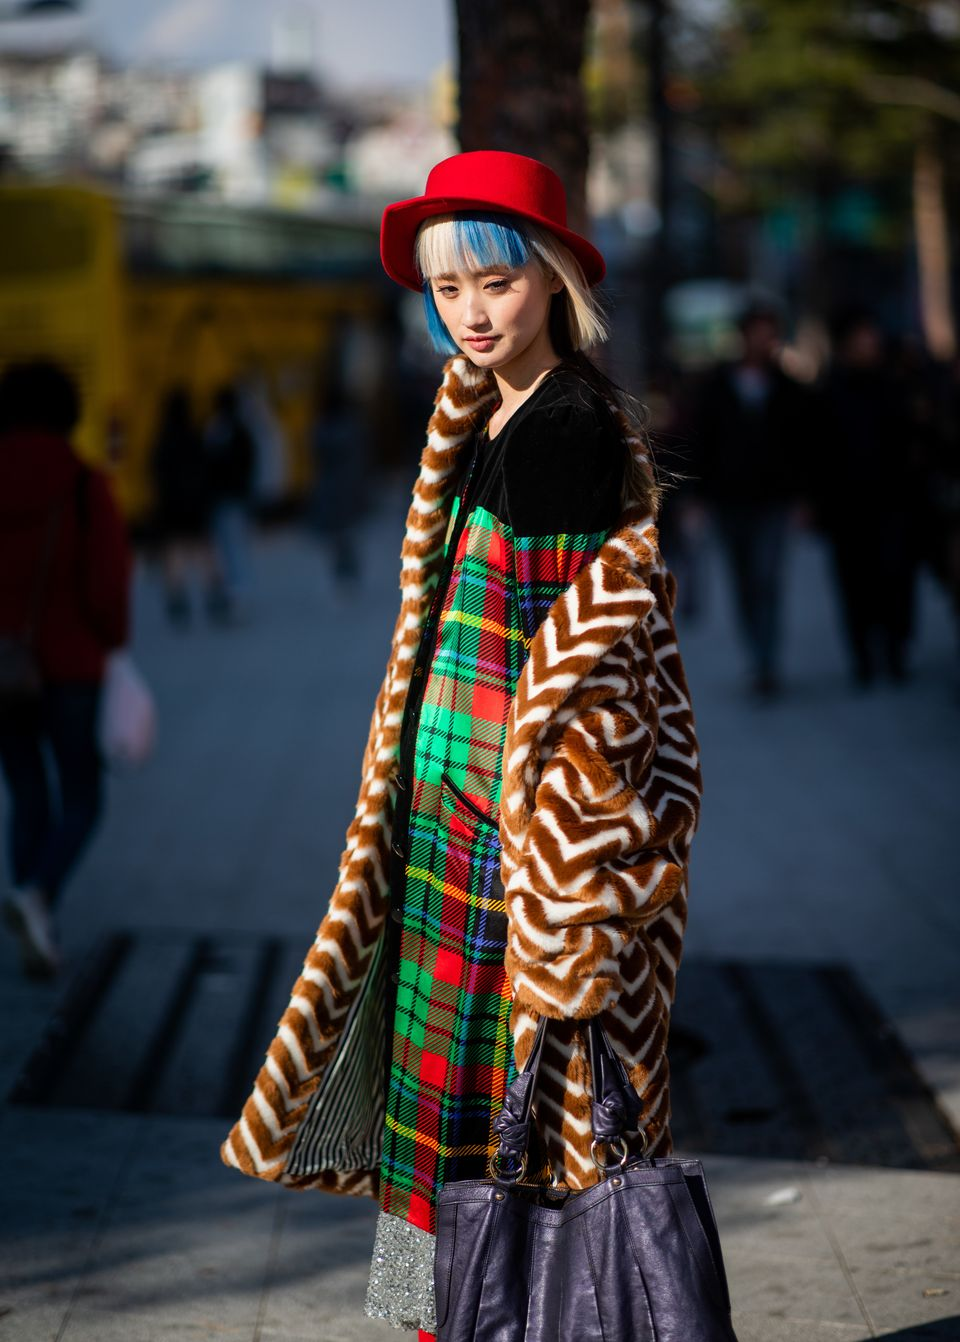 41bda4c6bbb96 Seoul Street Style Photos Will Seriously Inspire You To Up Your ...